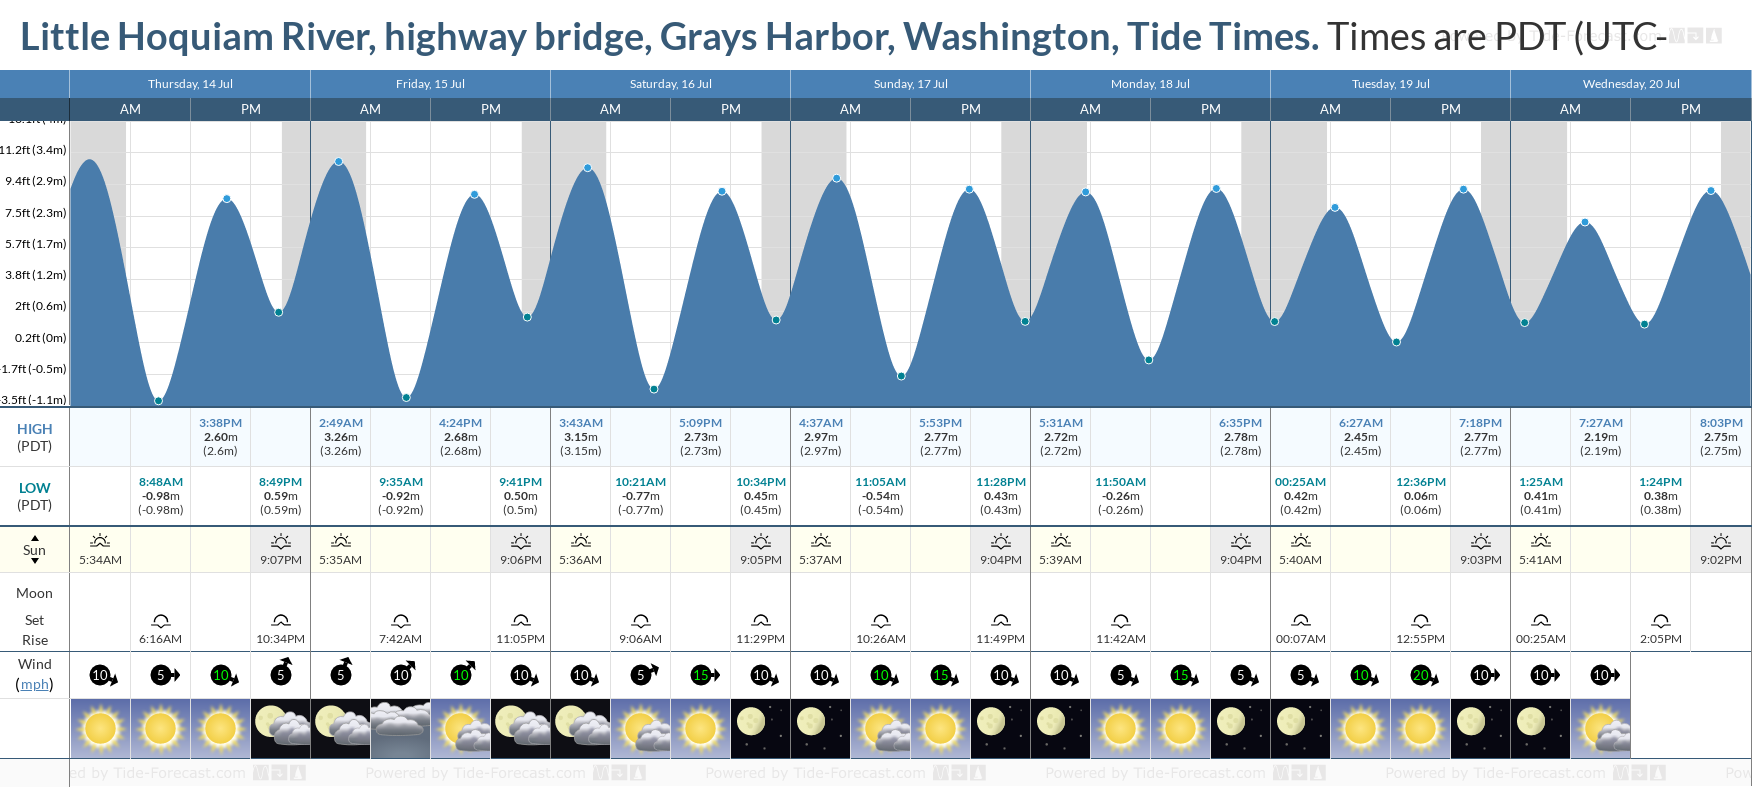 Little Hoquiam River, highway bridge, Grays Harbor, Washington Tide Chart including high and low tide tide times for the next 7 days